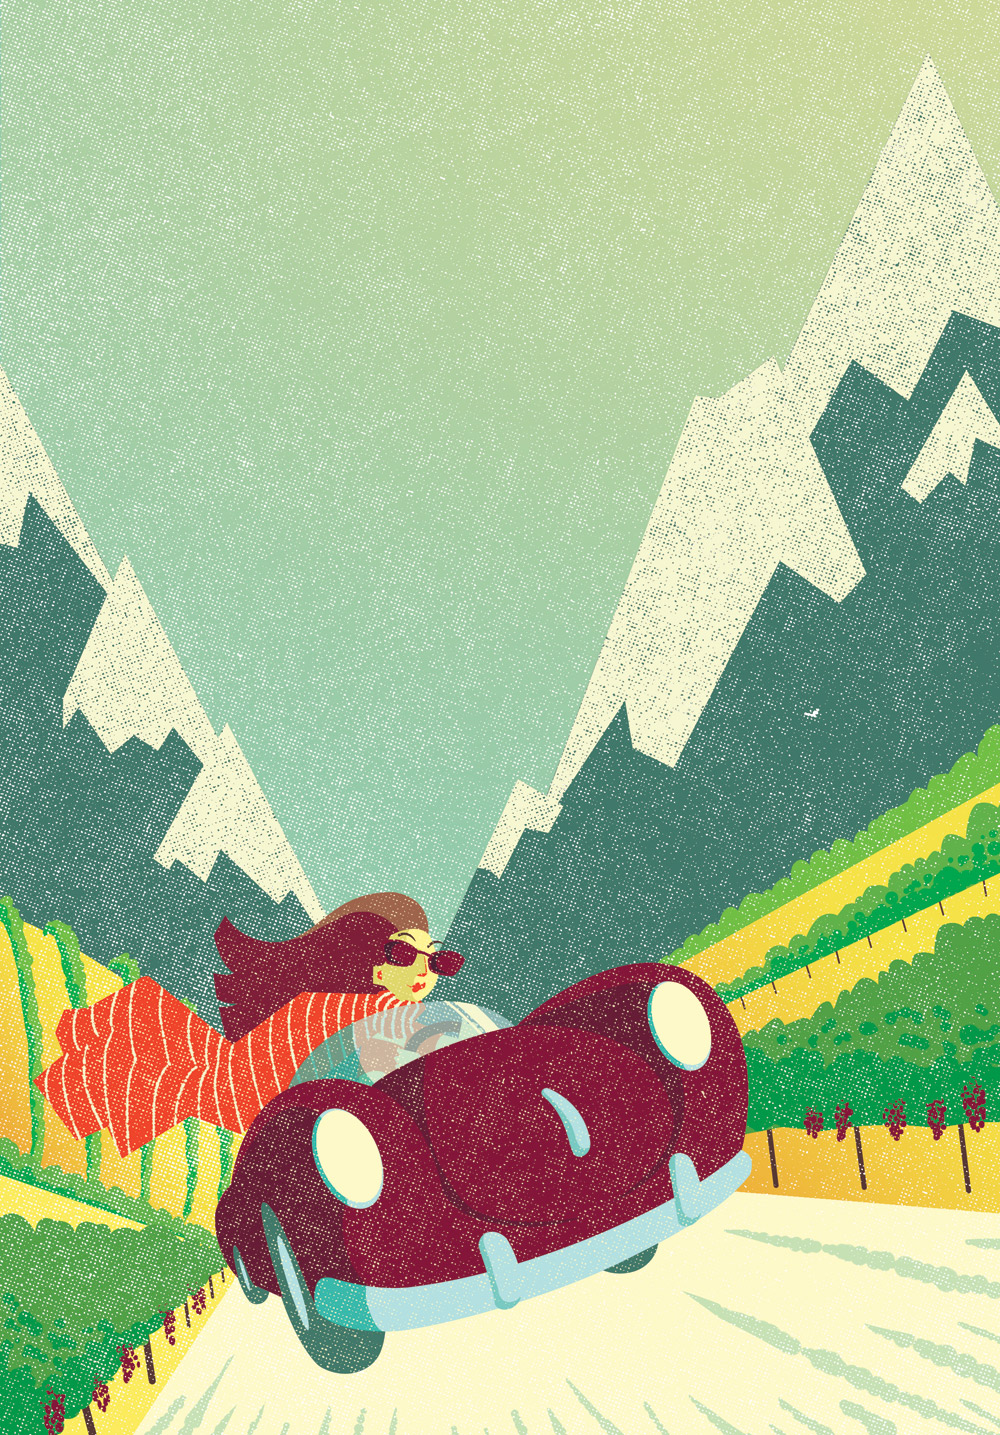 Cover illustration for Wine Republic magazine, Argentina.